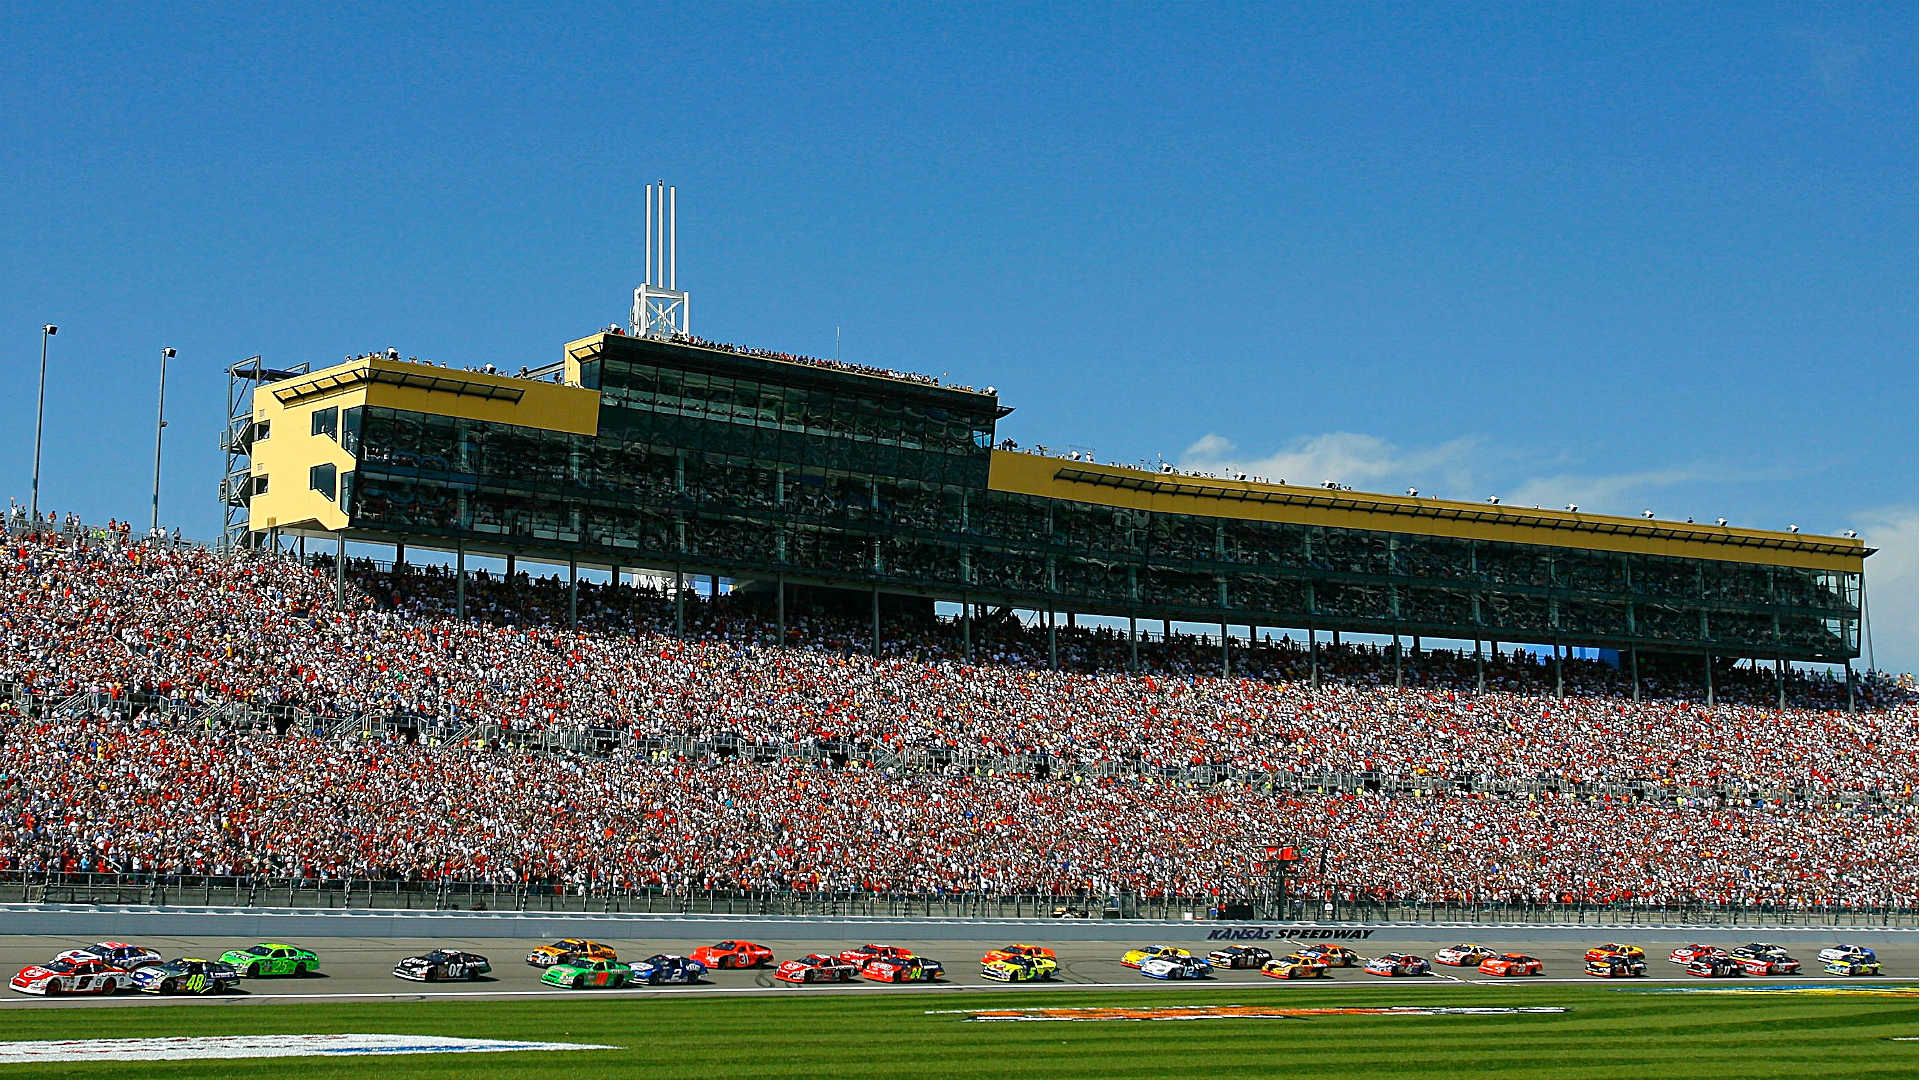 NASCAR at Kansas: Playoff standings, TV schedule, qualifying drivers for cutoff race